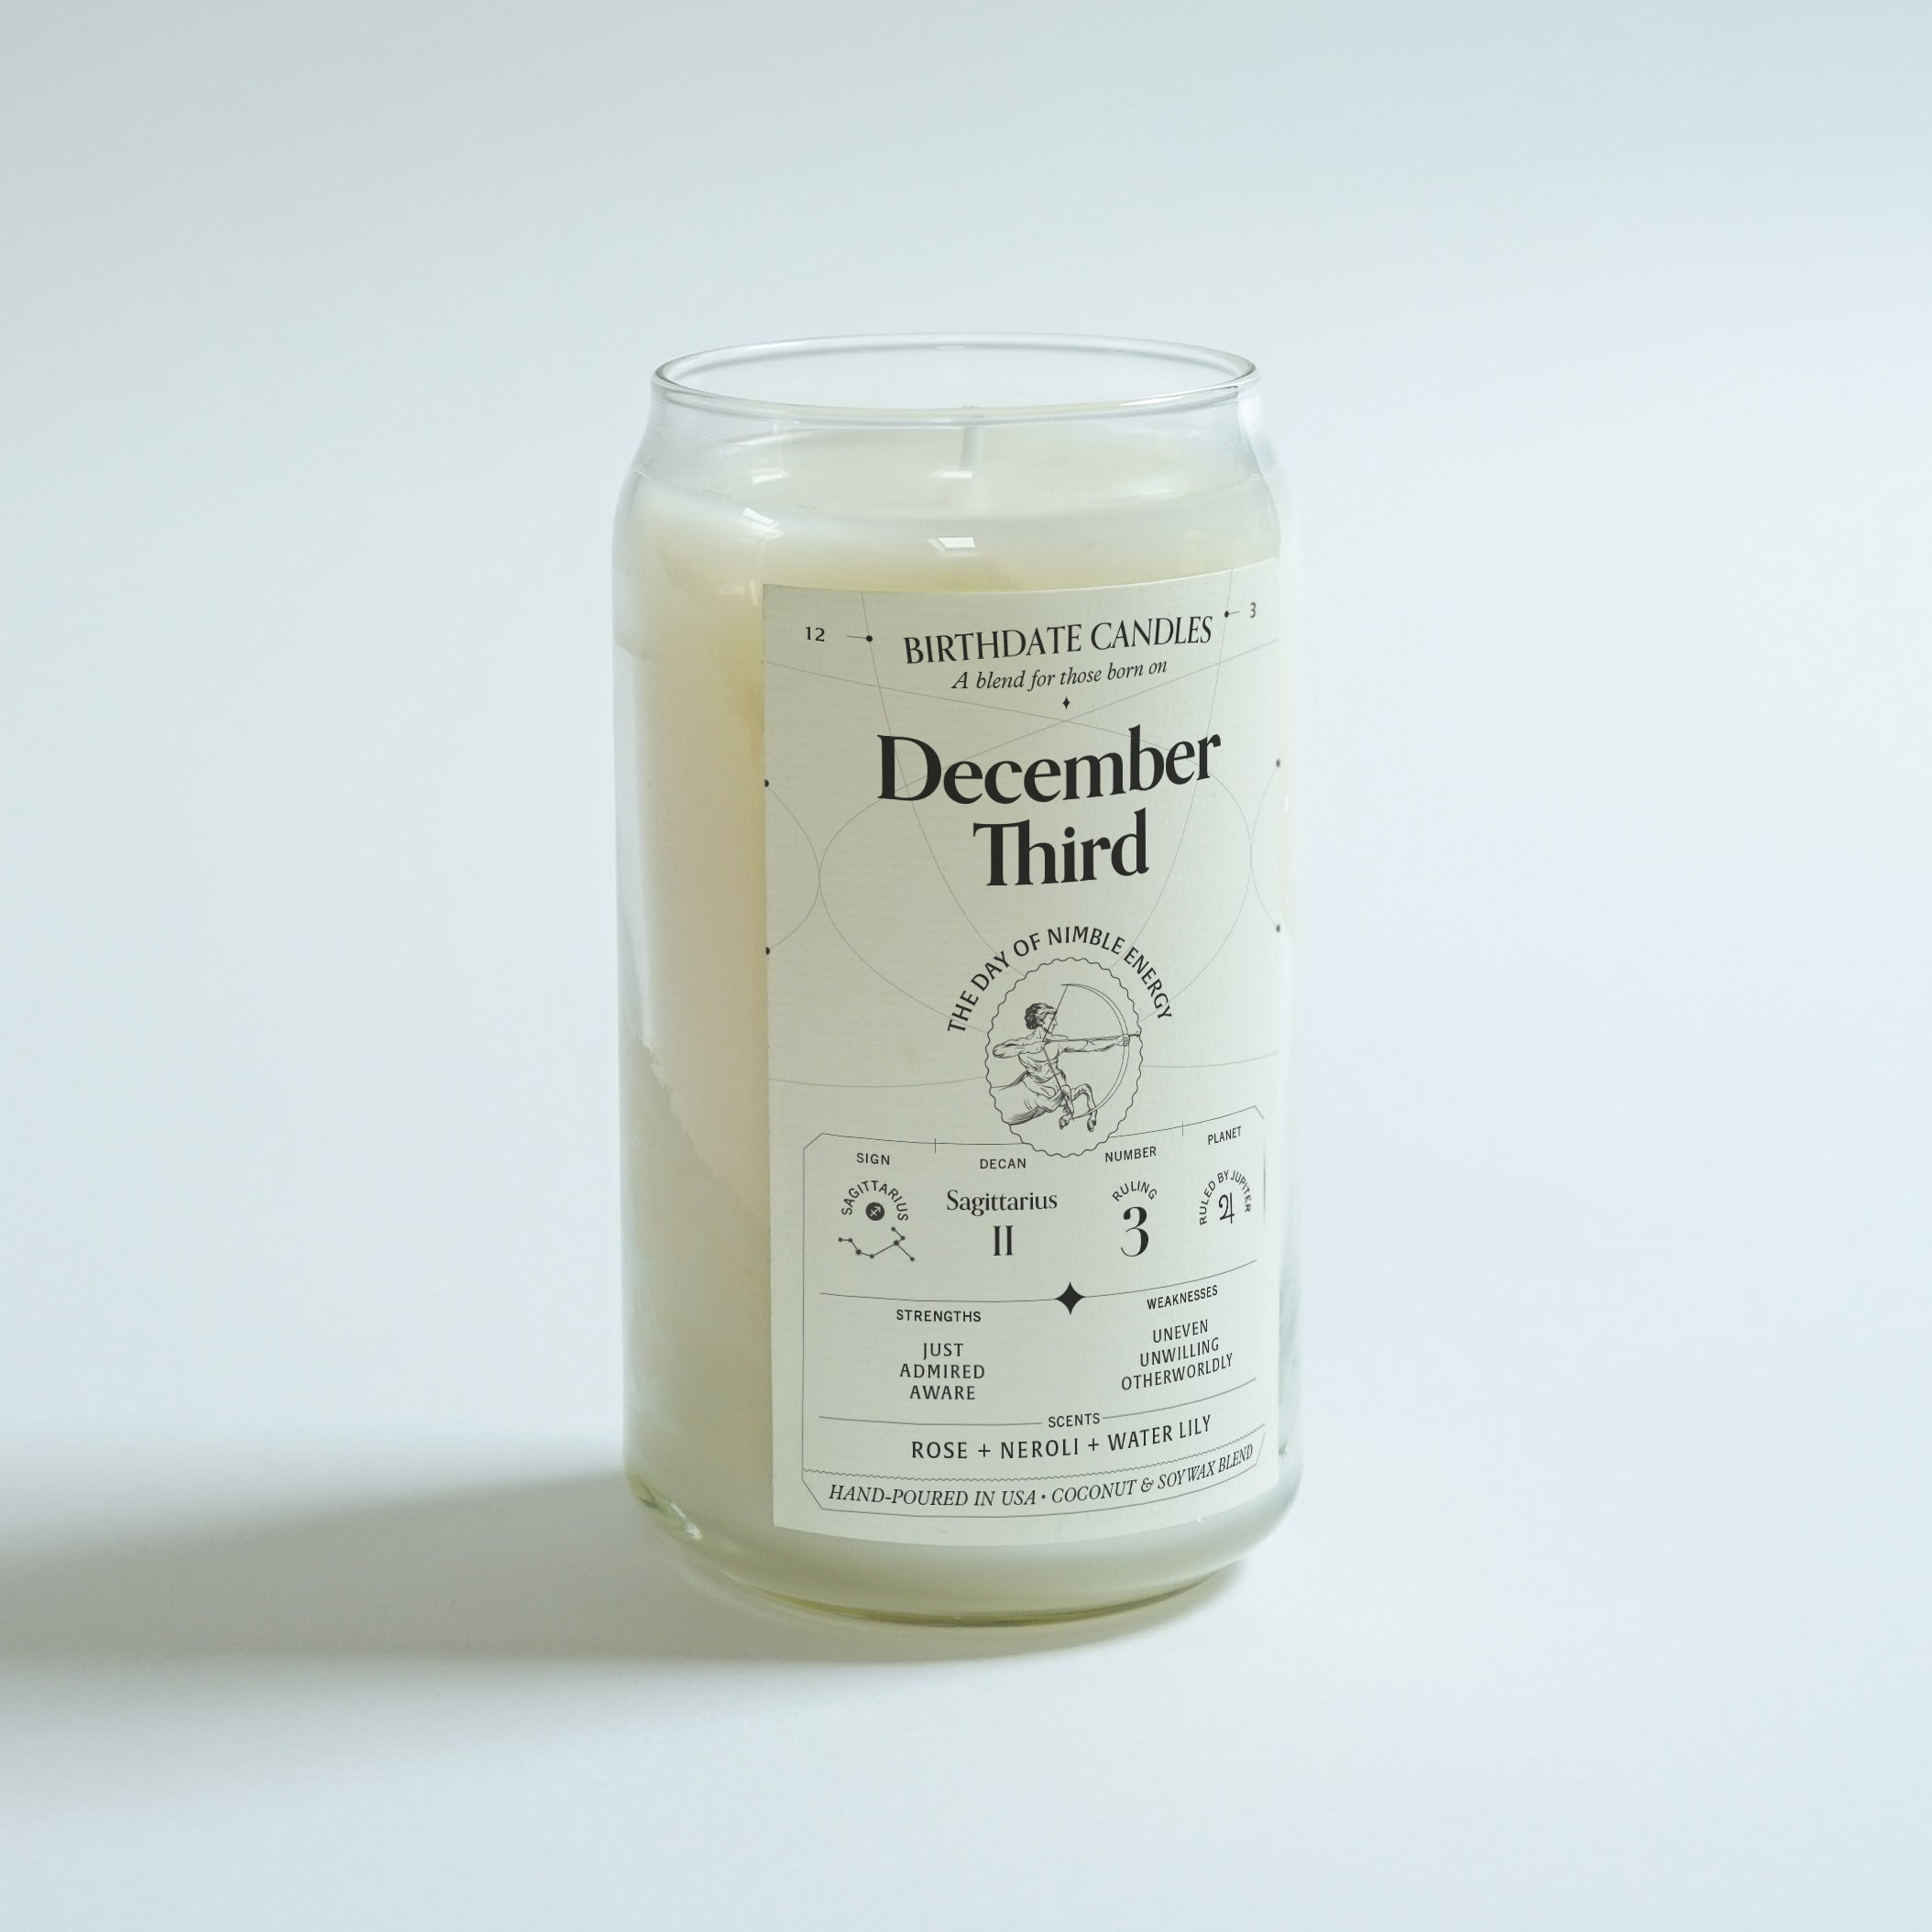 The December Third Candle